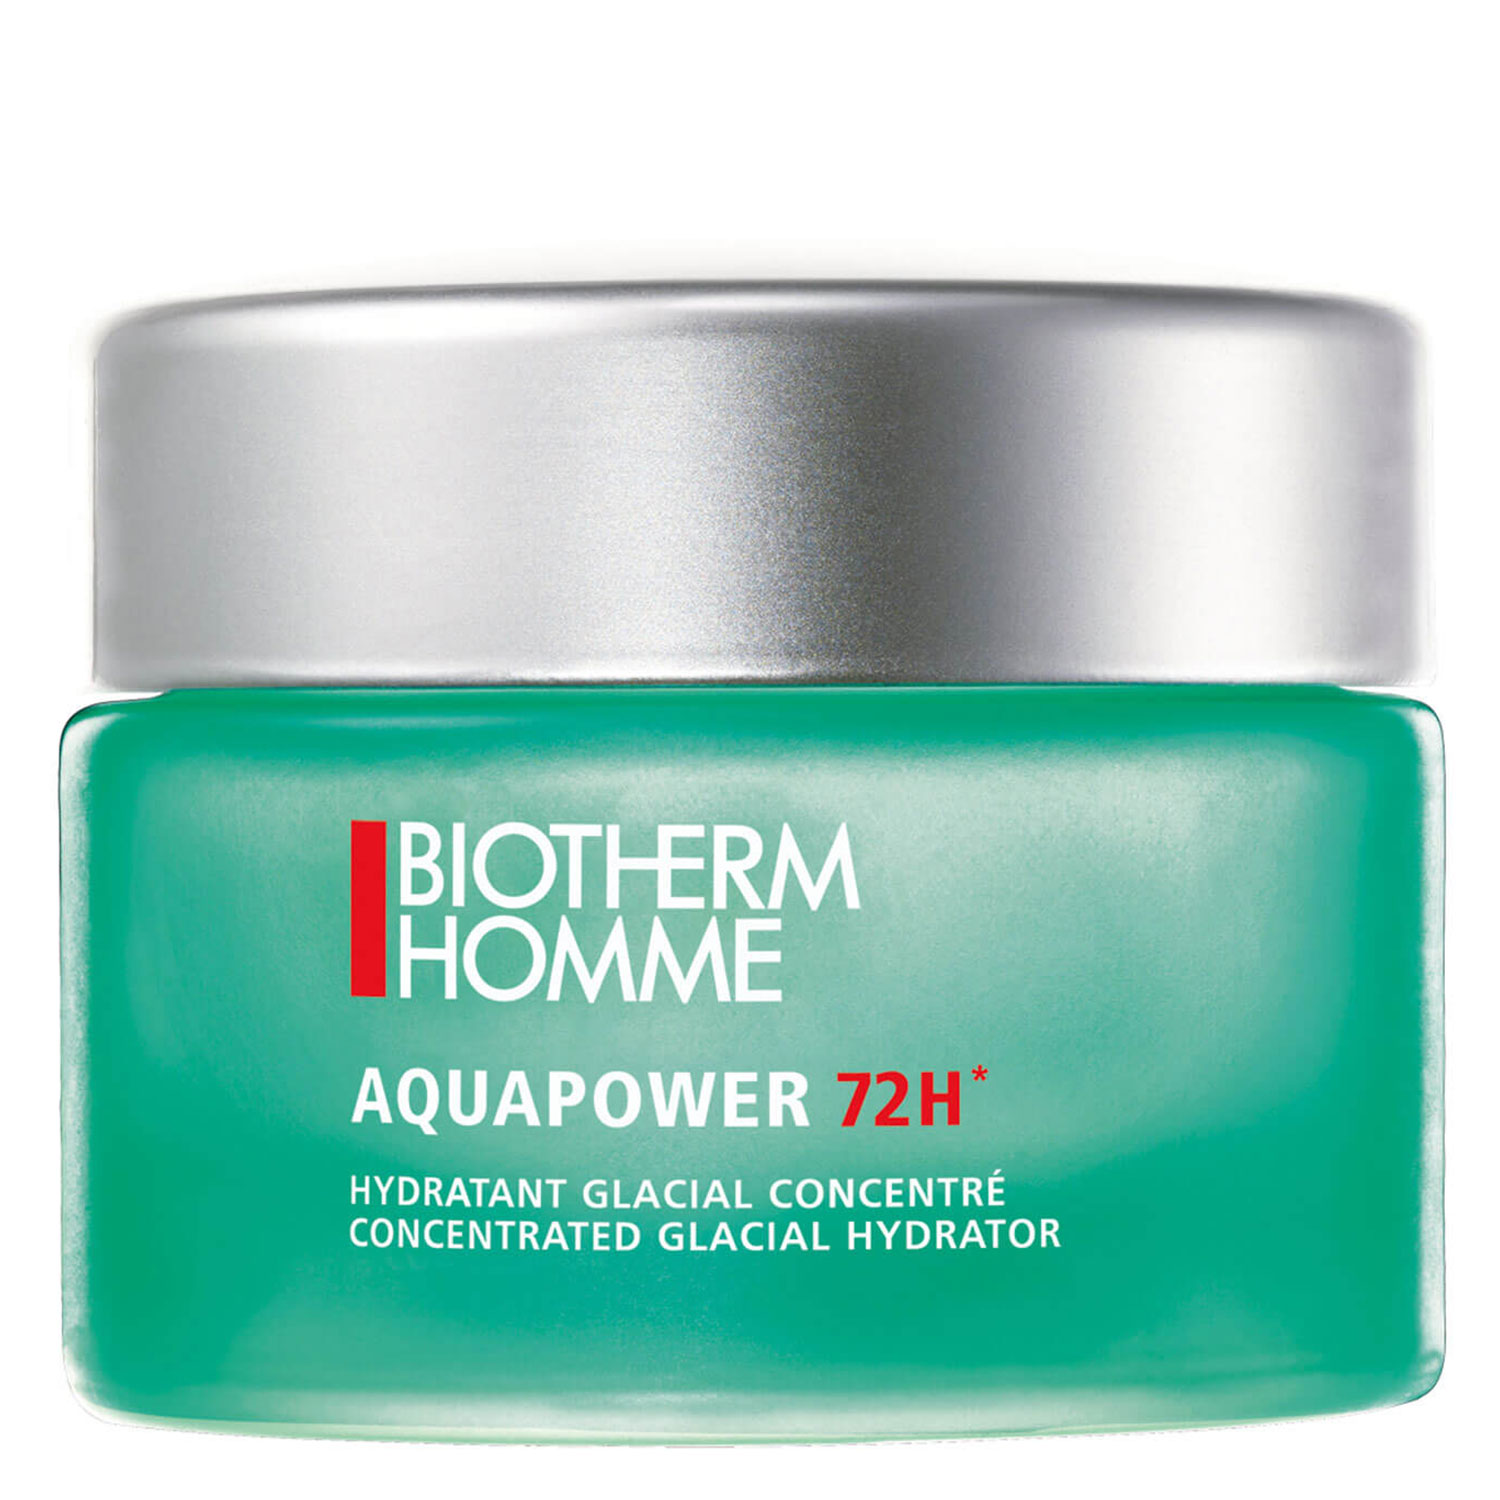 Biotherm Homme - Aquapower 72H Hydrator